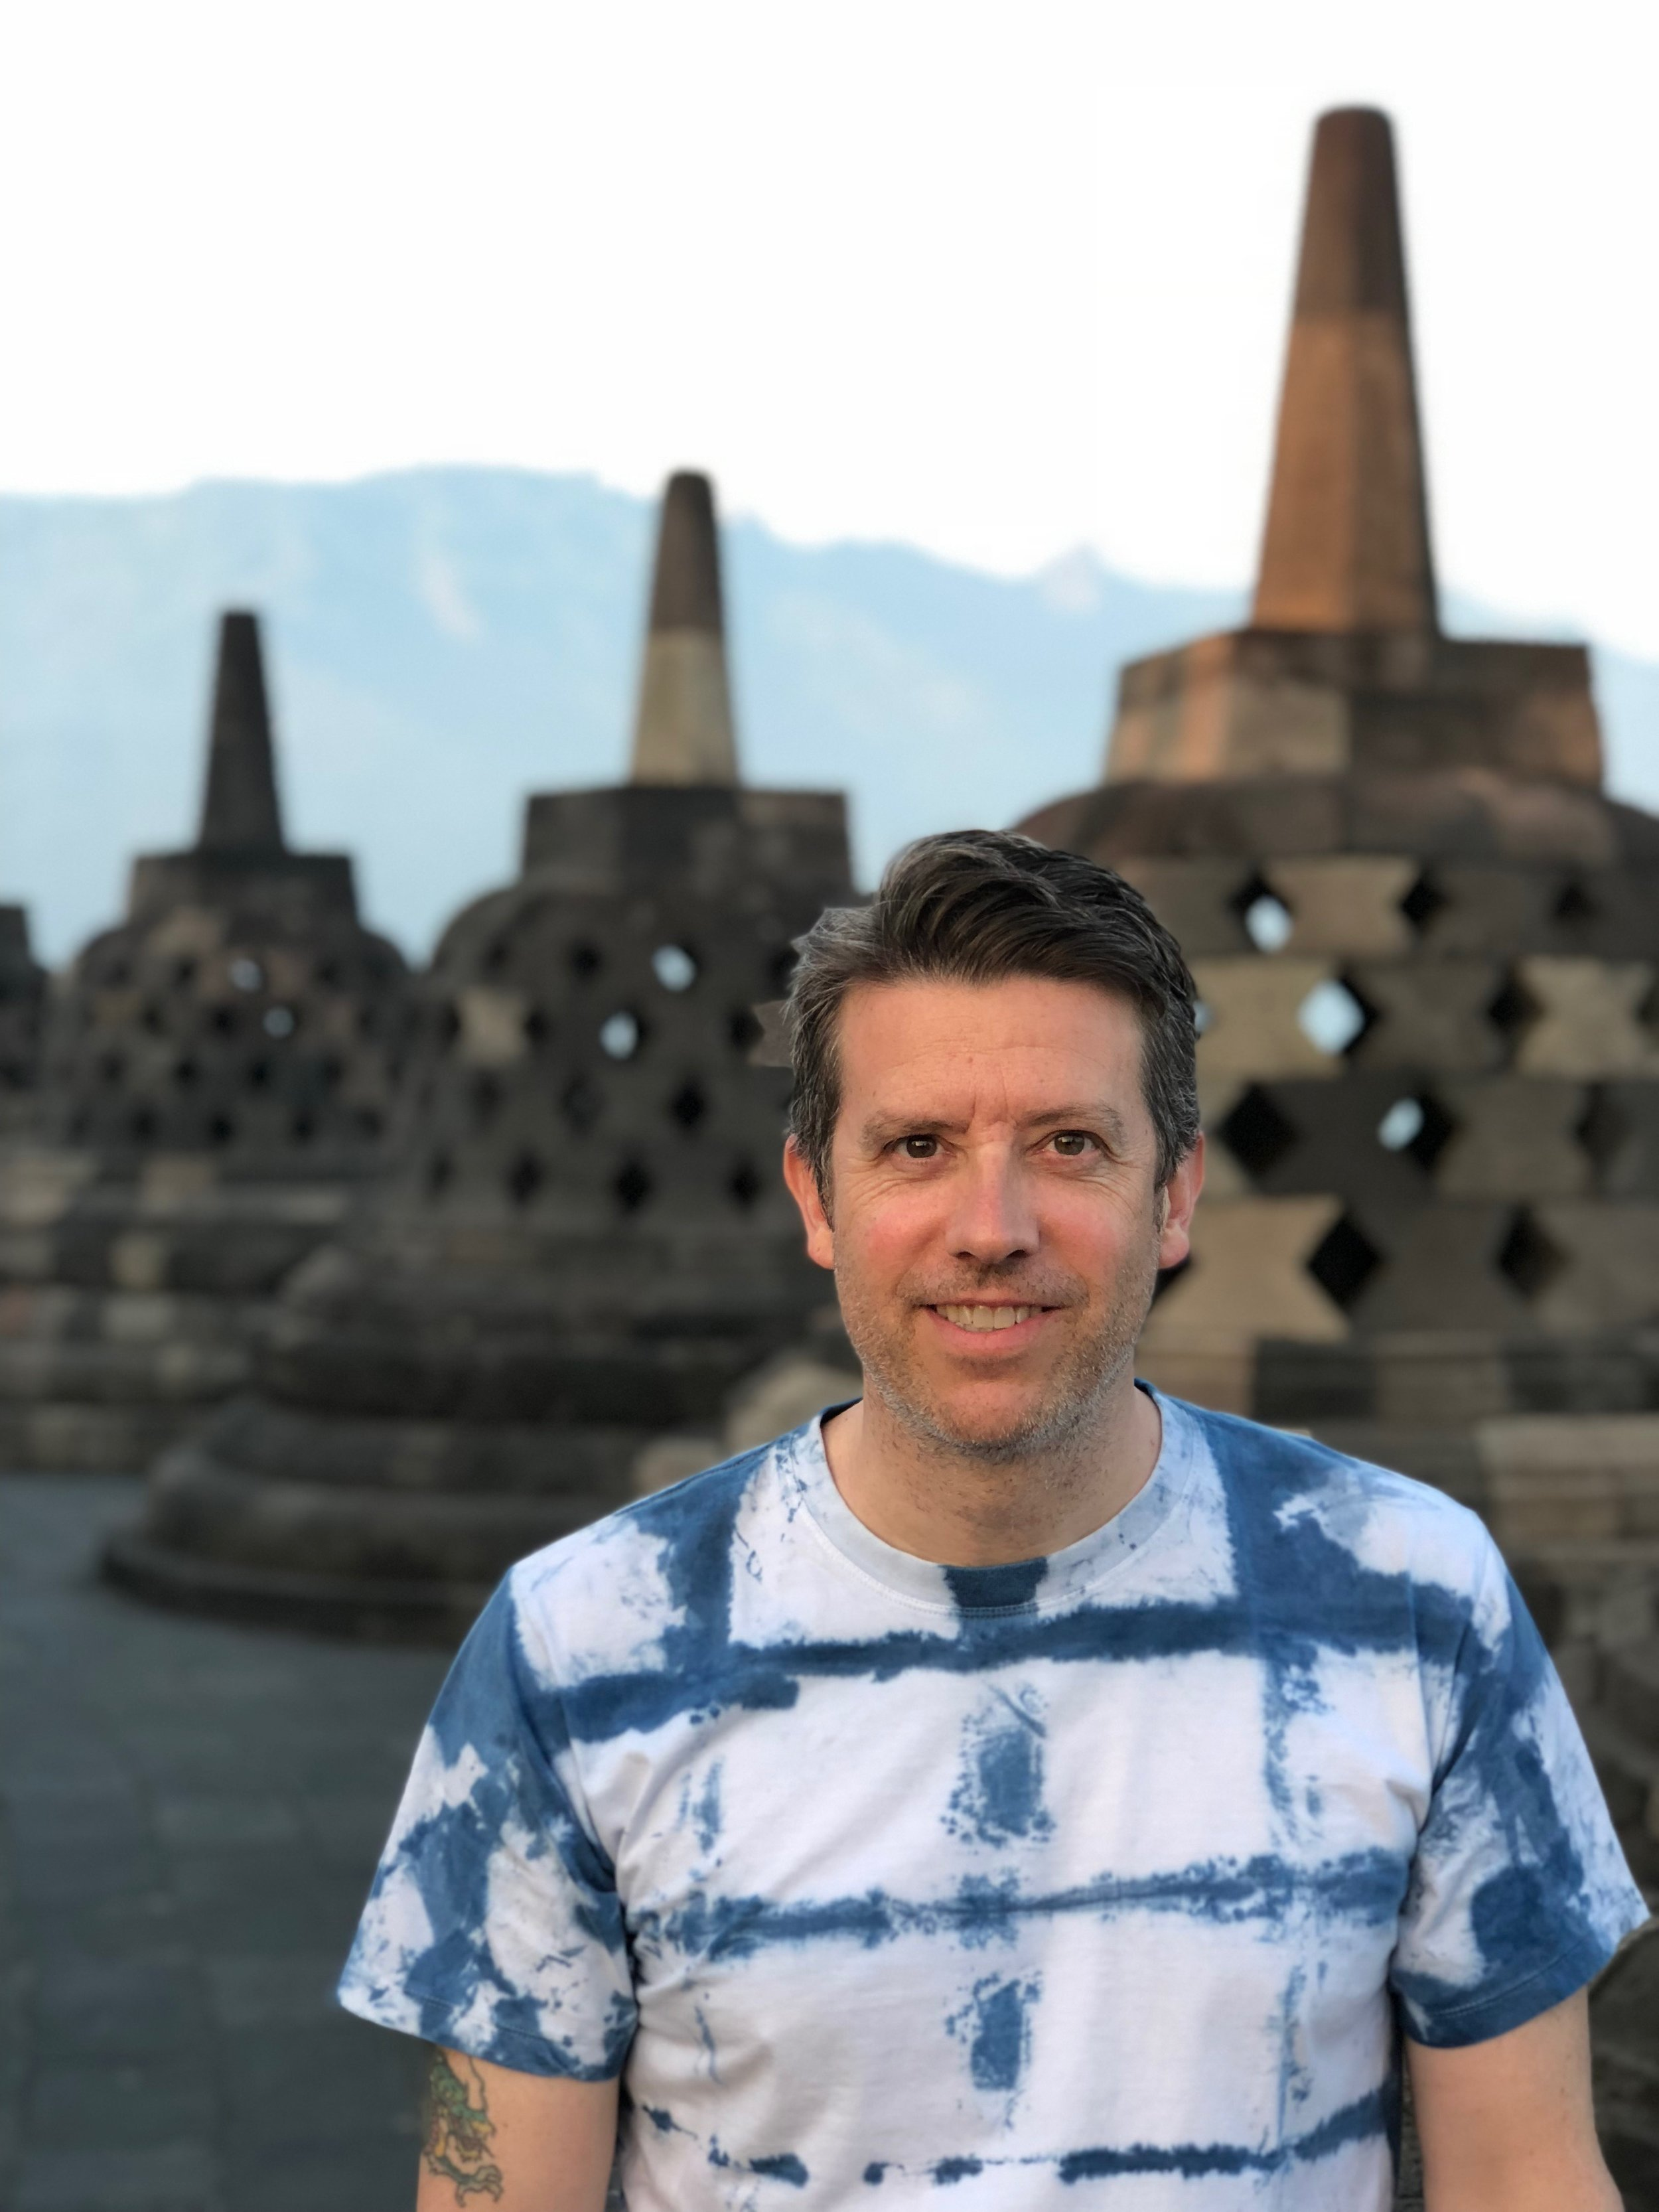 Wally was happy he could spend his birthday at Borobudur